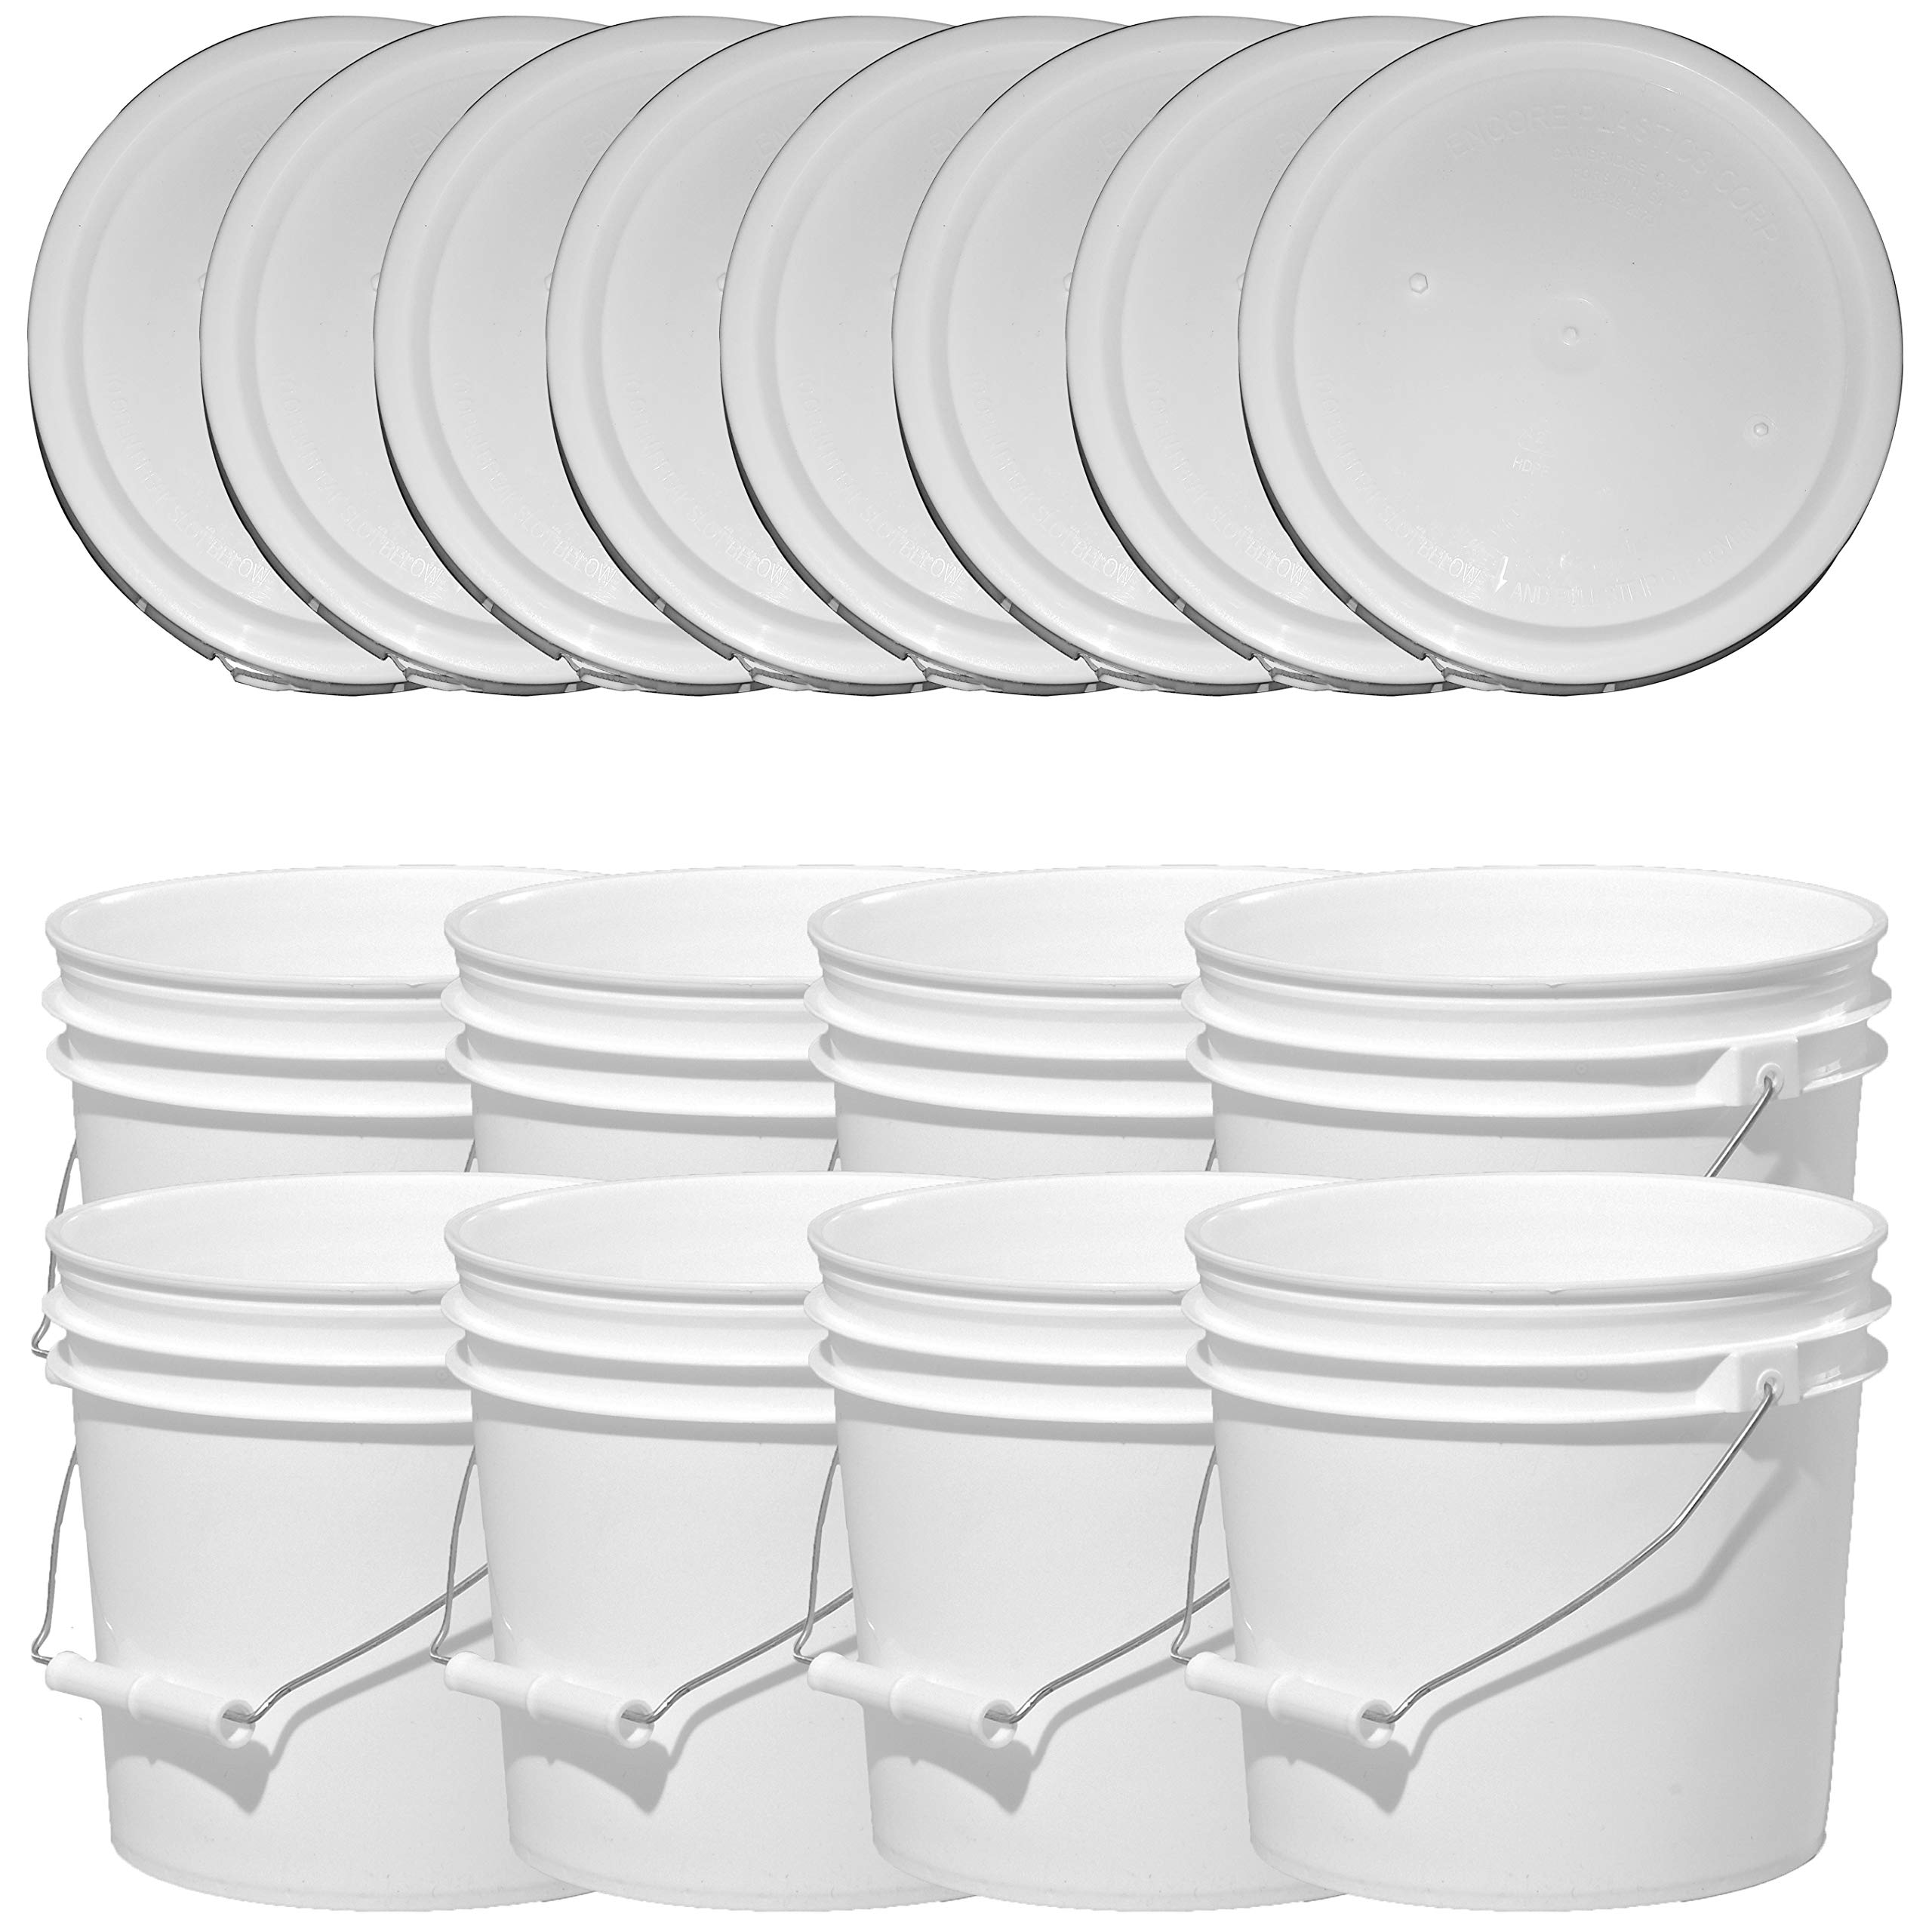 Illing Company Premium 1 Gallon Bucket, HDPE, White, 8 Pack with Matching Lids